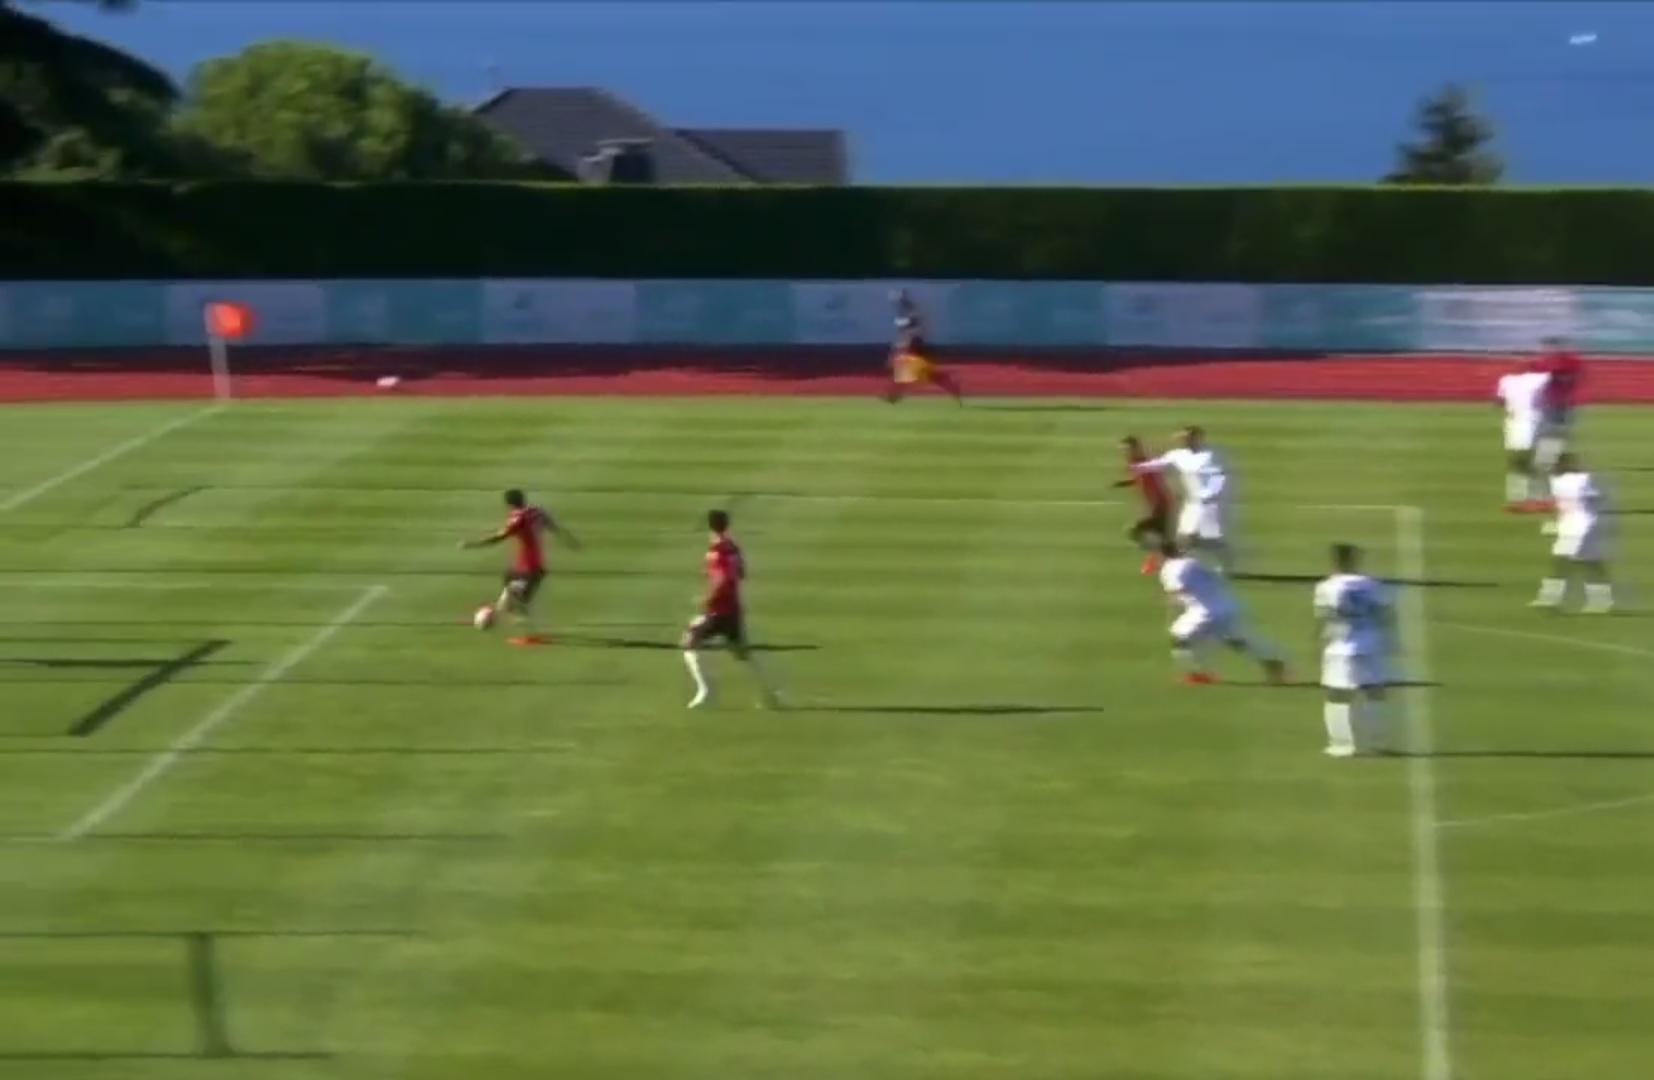 (Video) Minamino scores classy Liverpool goal after brilliant build-up play by Shaqiri